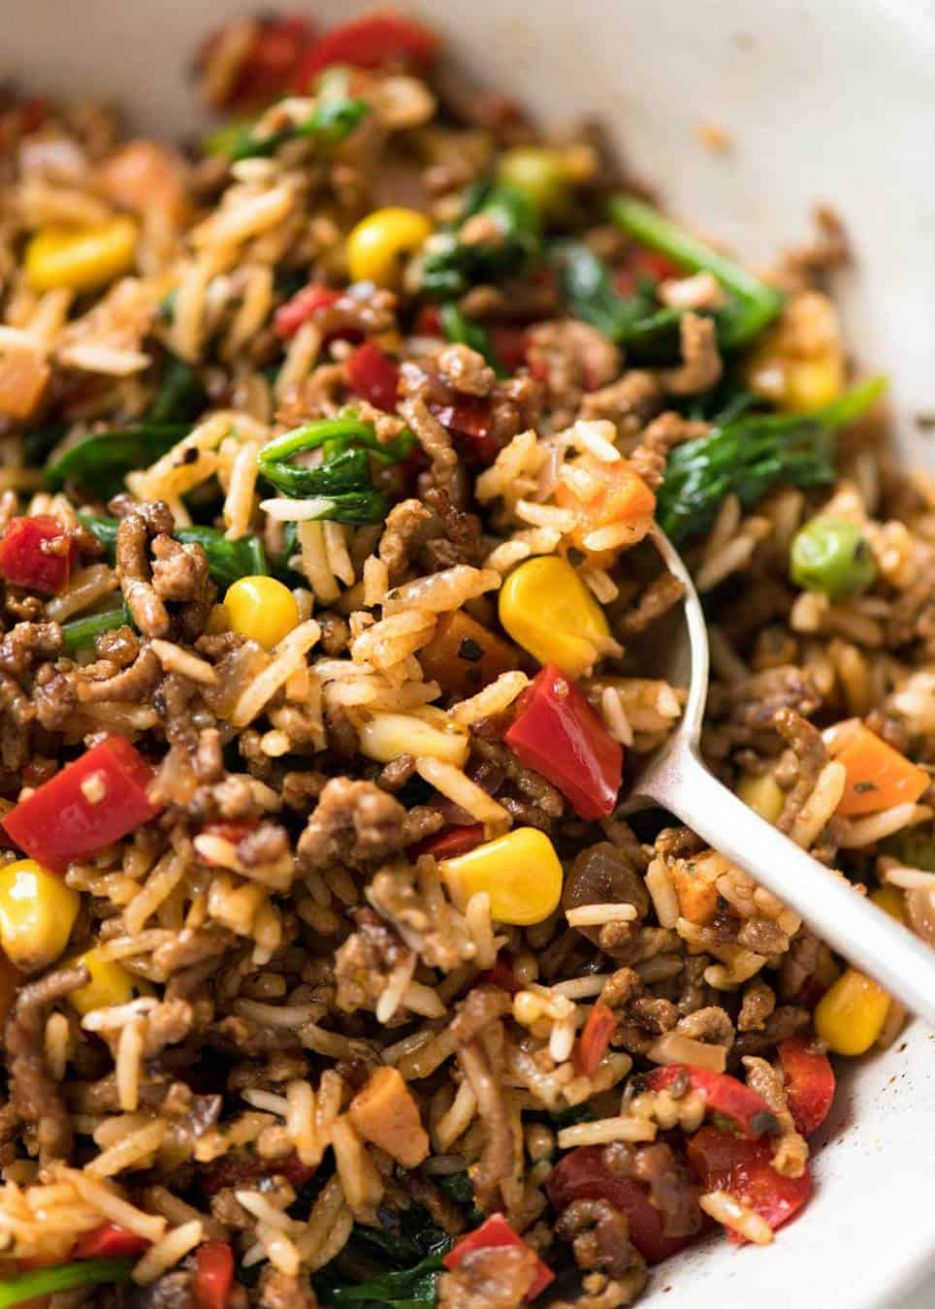 Beef and Rice with Veggies - Mince Beef Recipes Quick